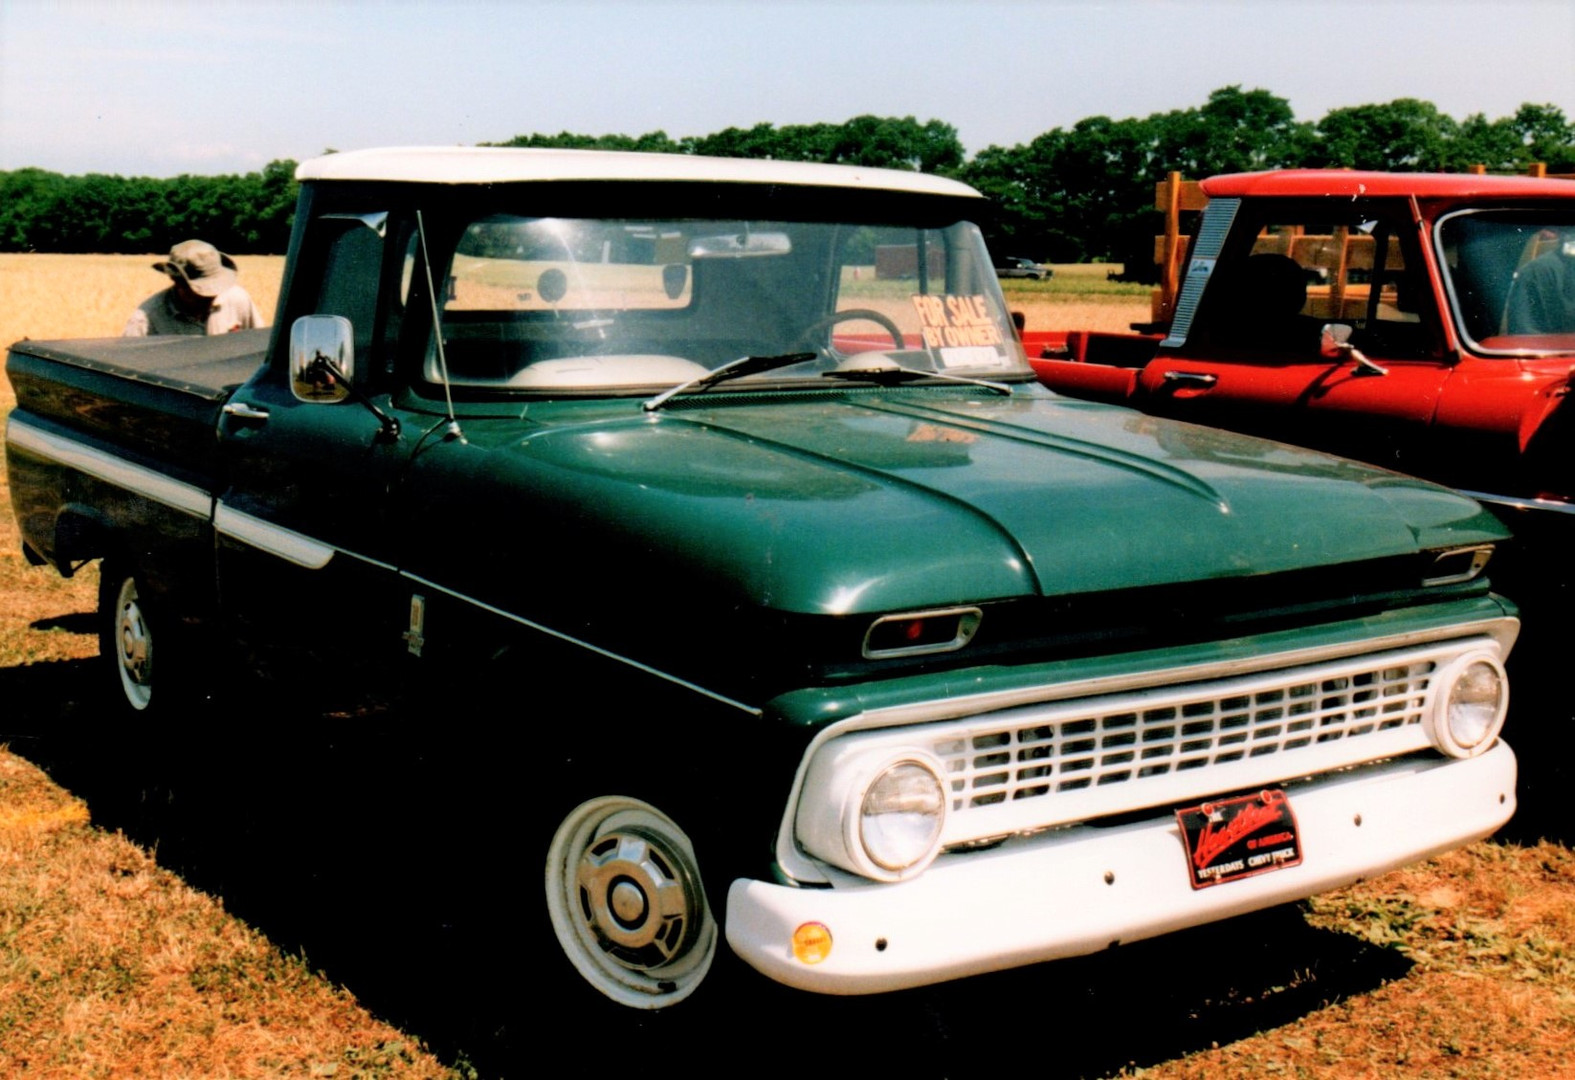 1963 Chevrolet pickup - Robert Mohr